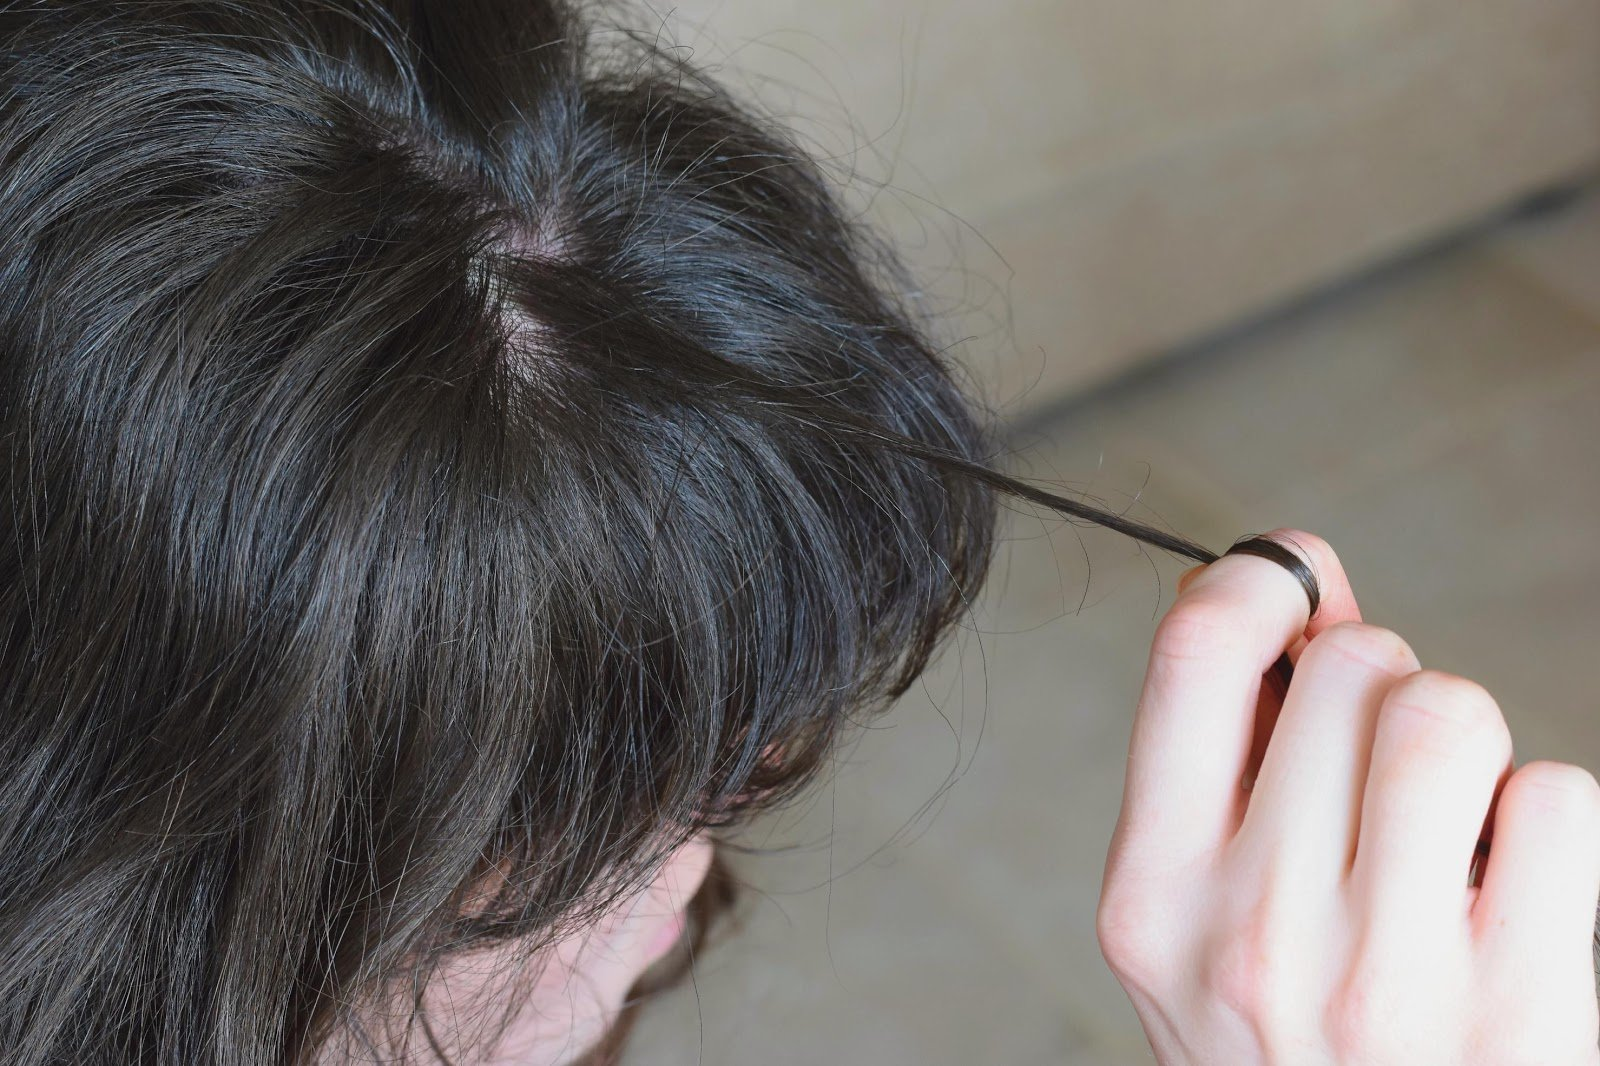 hair pulling anxiety disorder